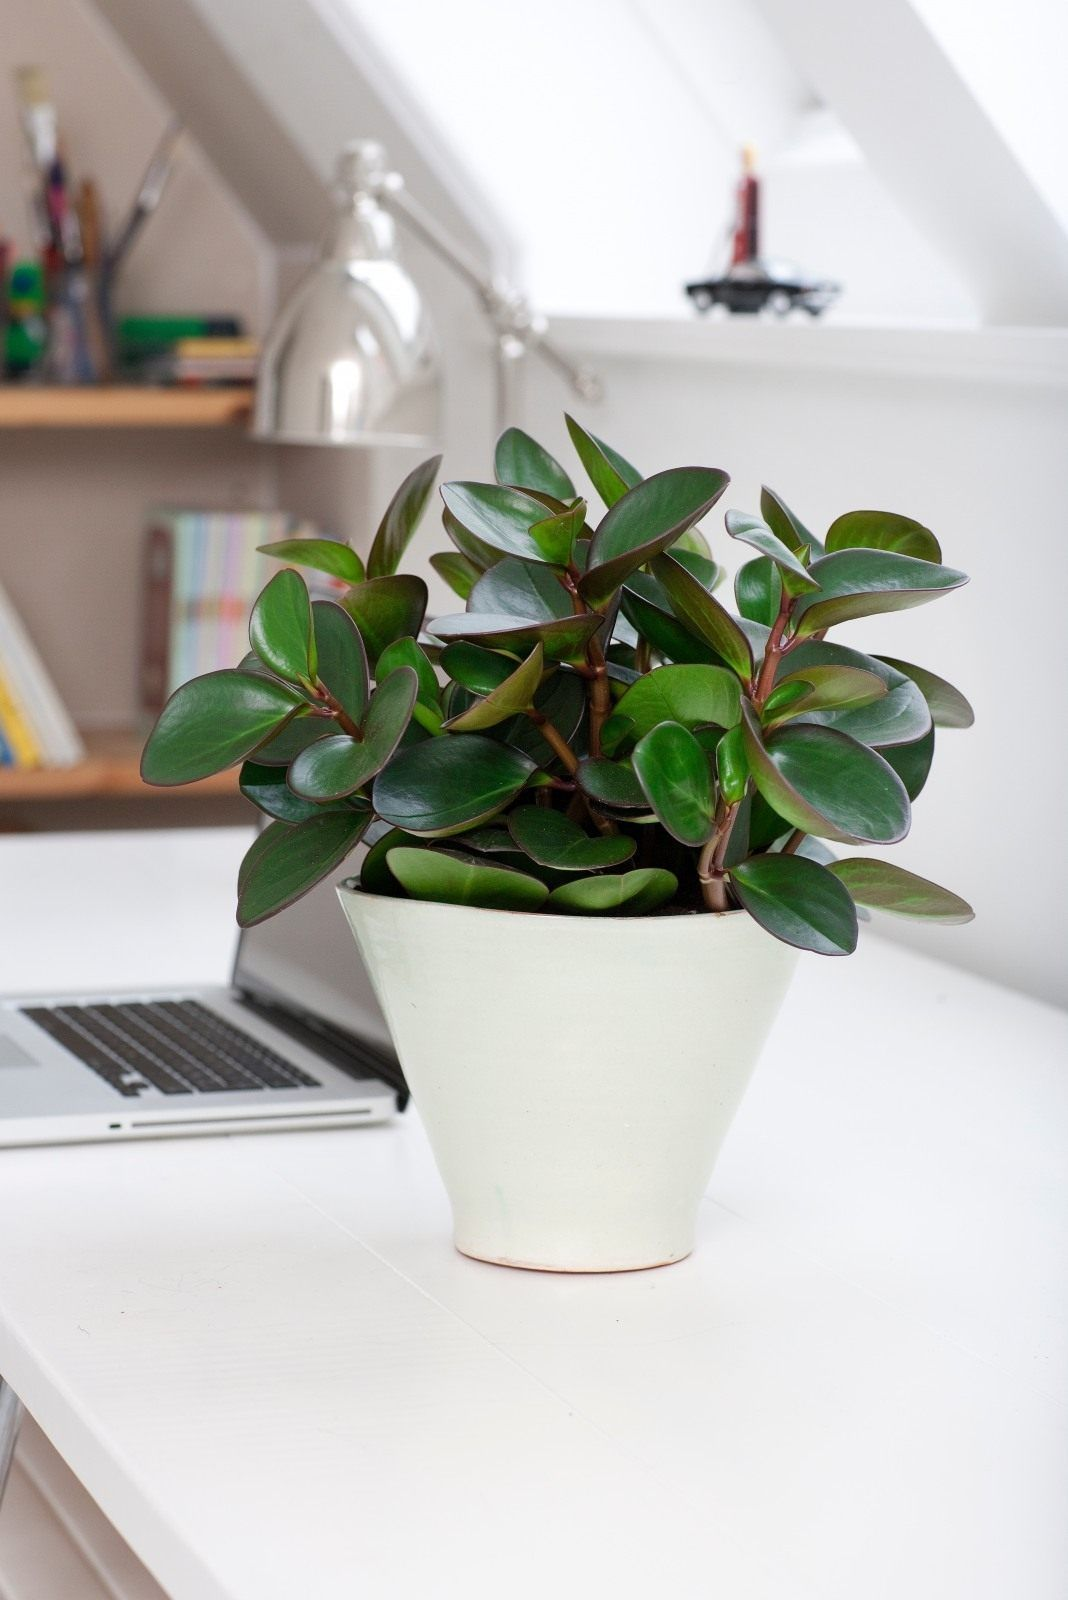 Baby Or American Rubber Plant Peperomia Obtusifolia Can